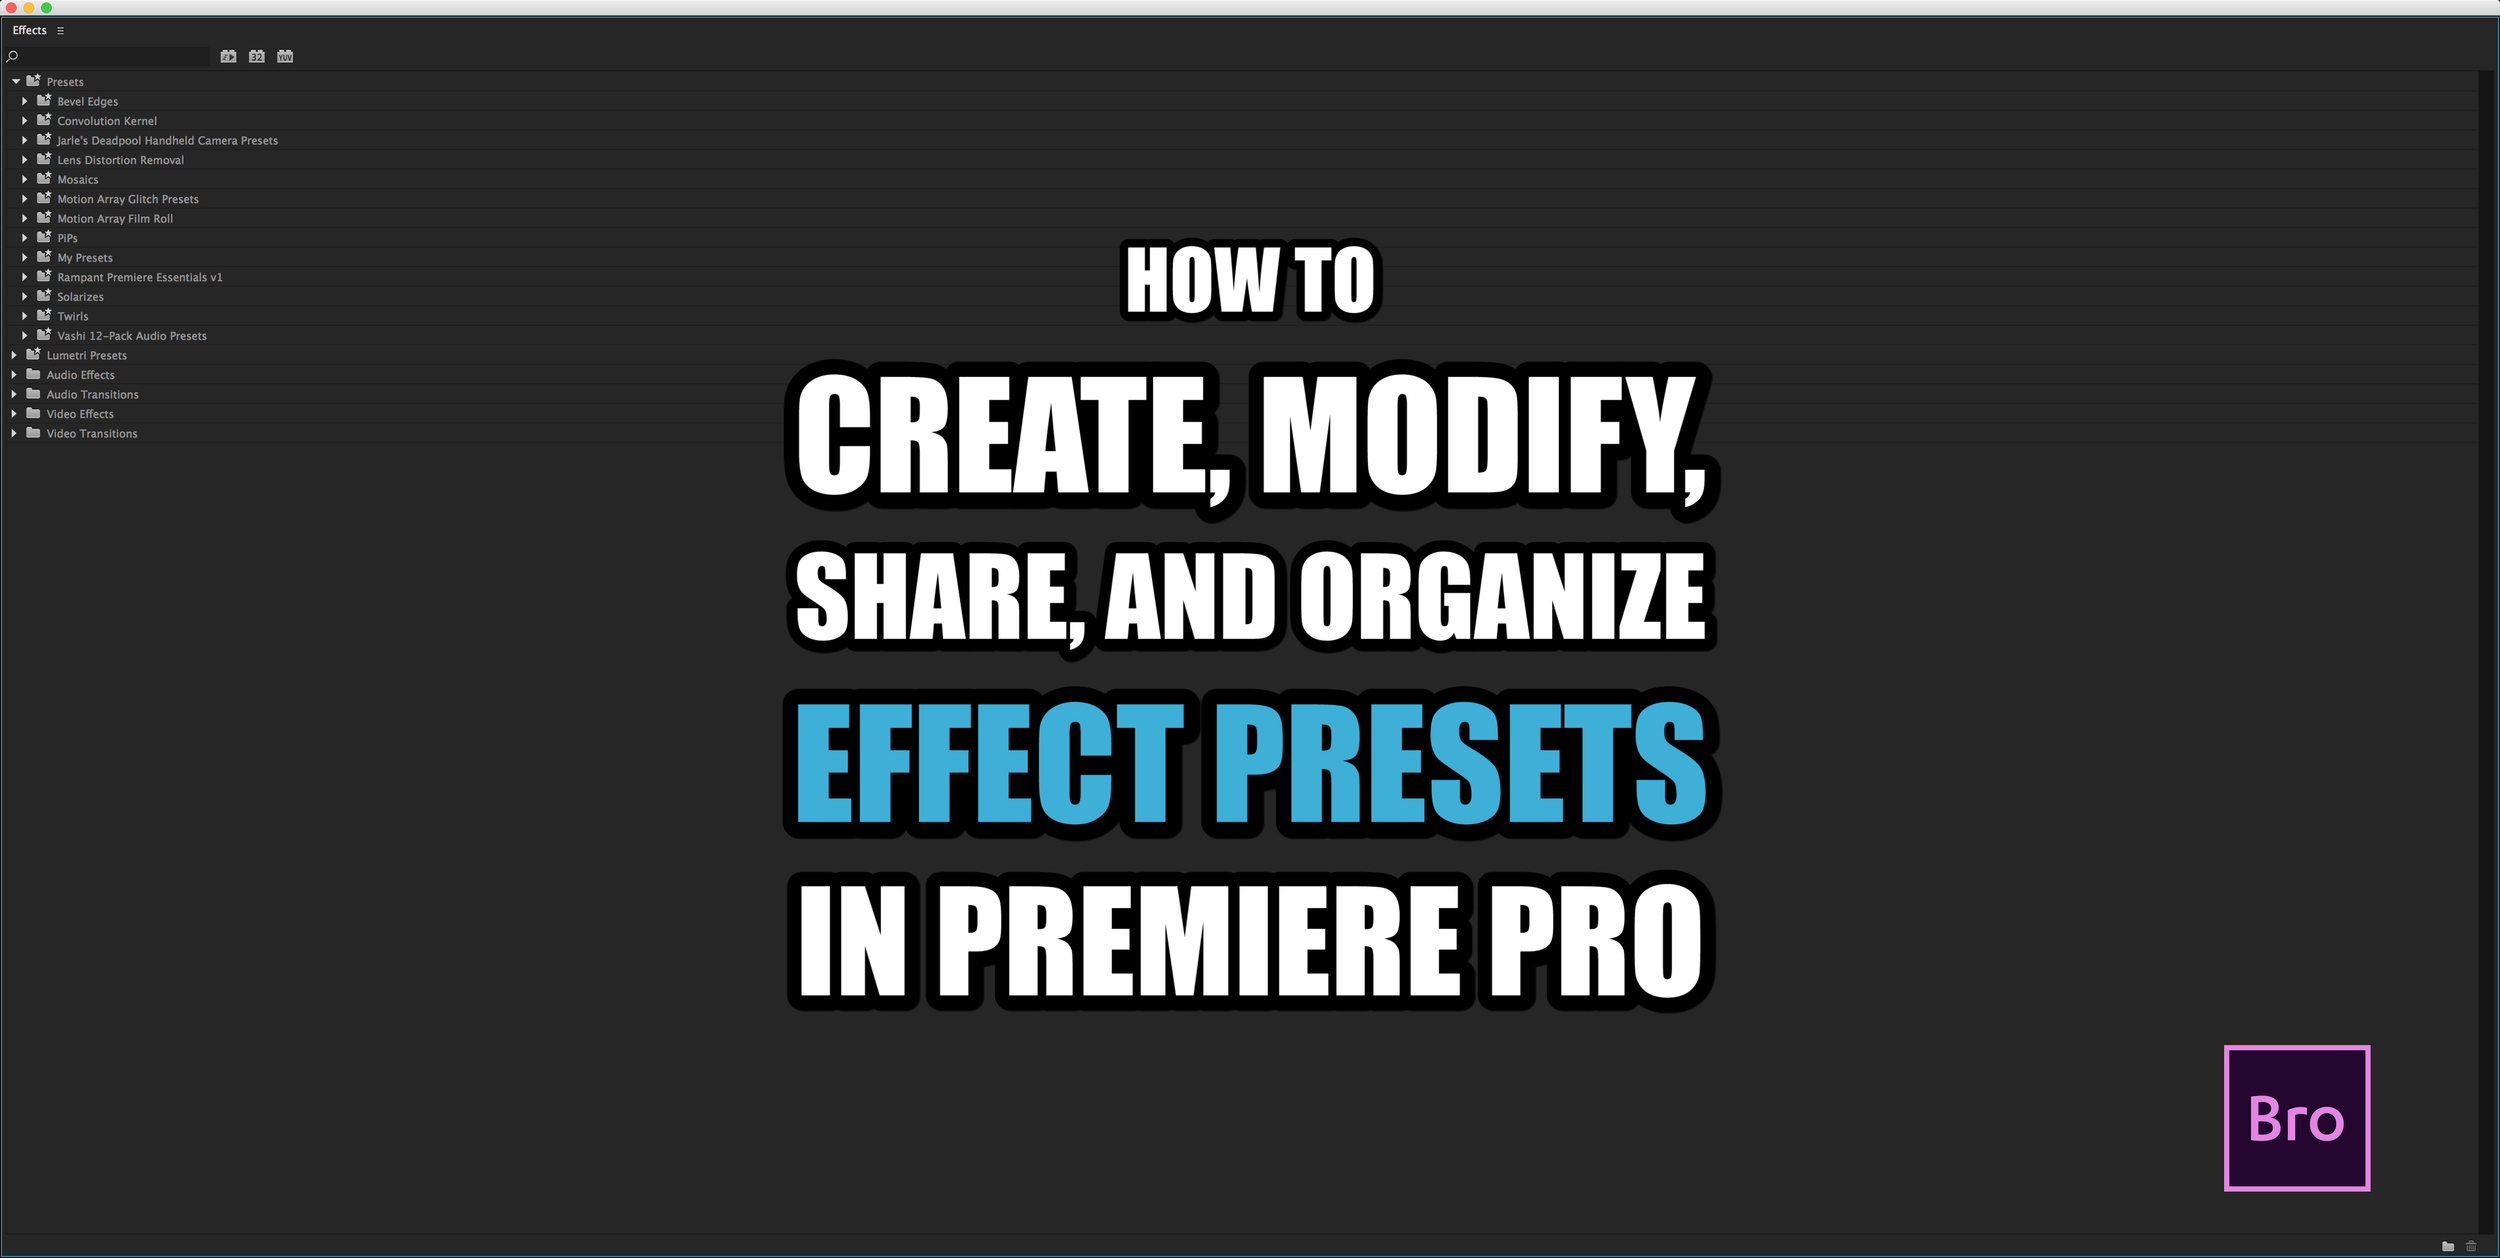 How to Create, Modify, Share, and Organize Effect Presets in